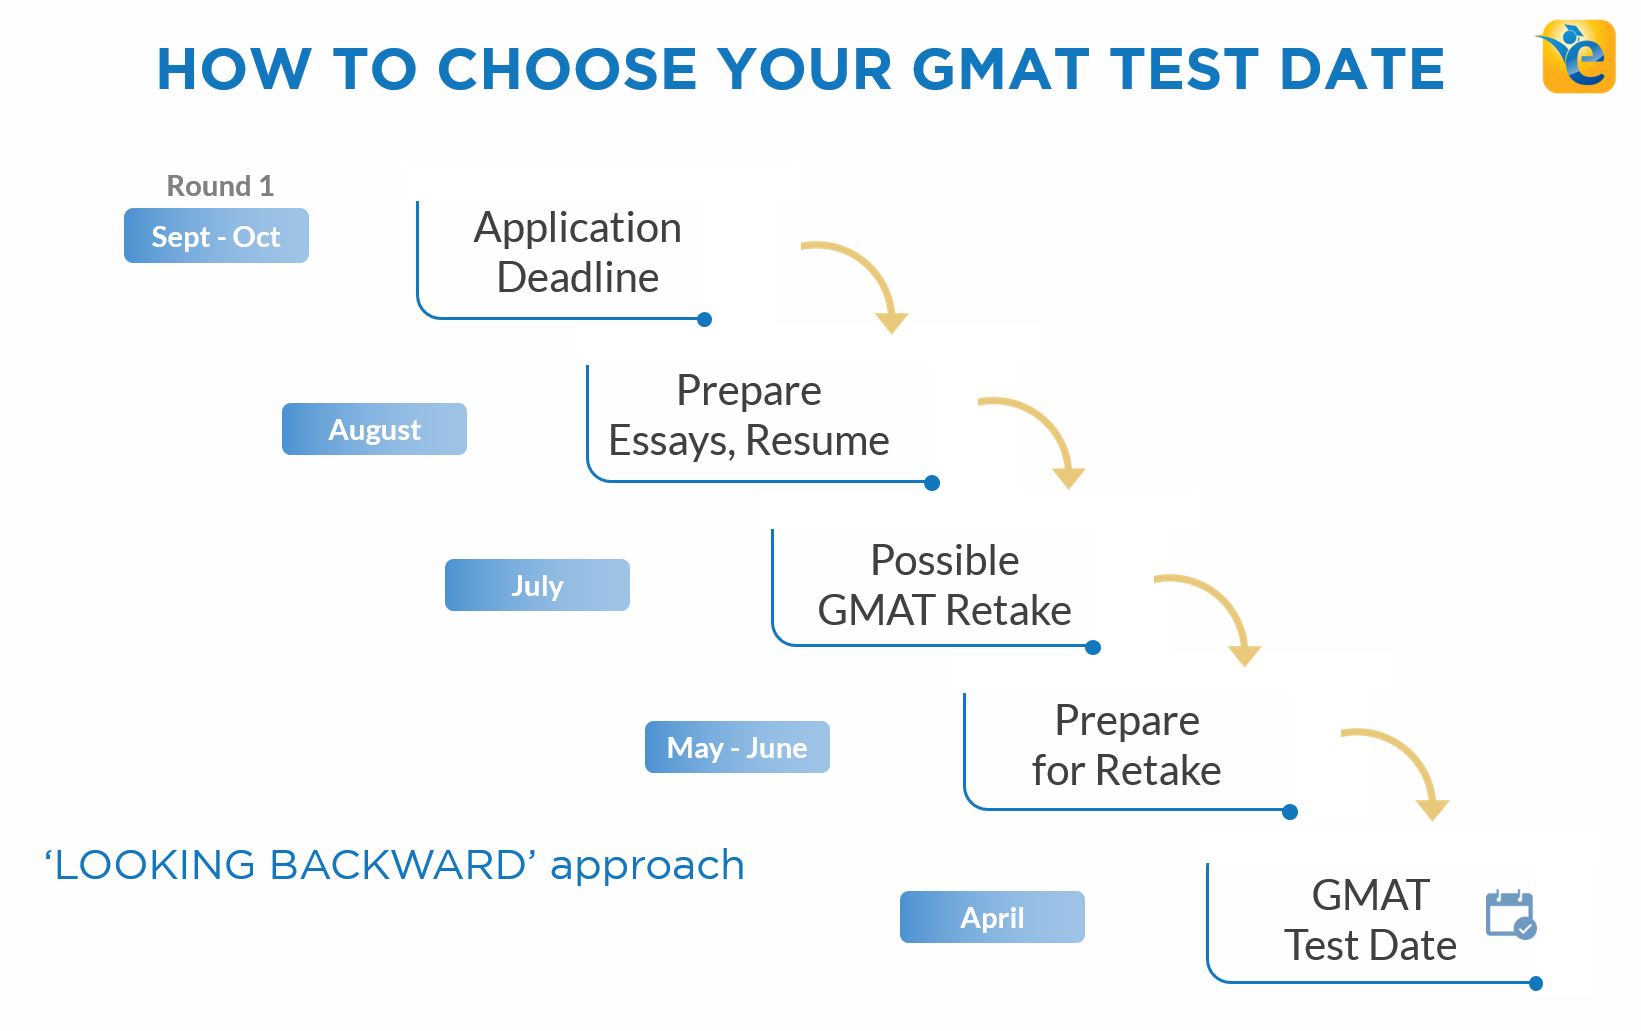 gmat test dates 2018 | how to choose your gmat test date 2018 - 2019